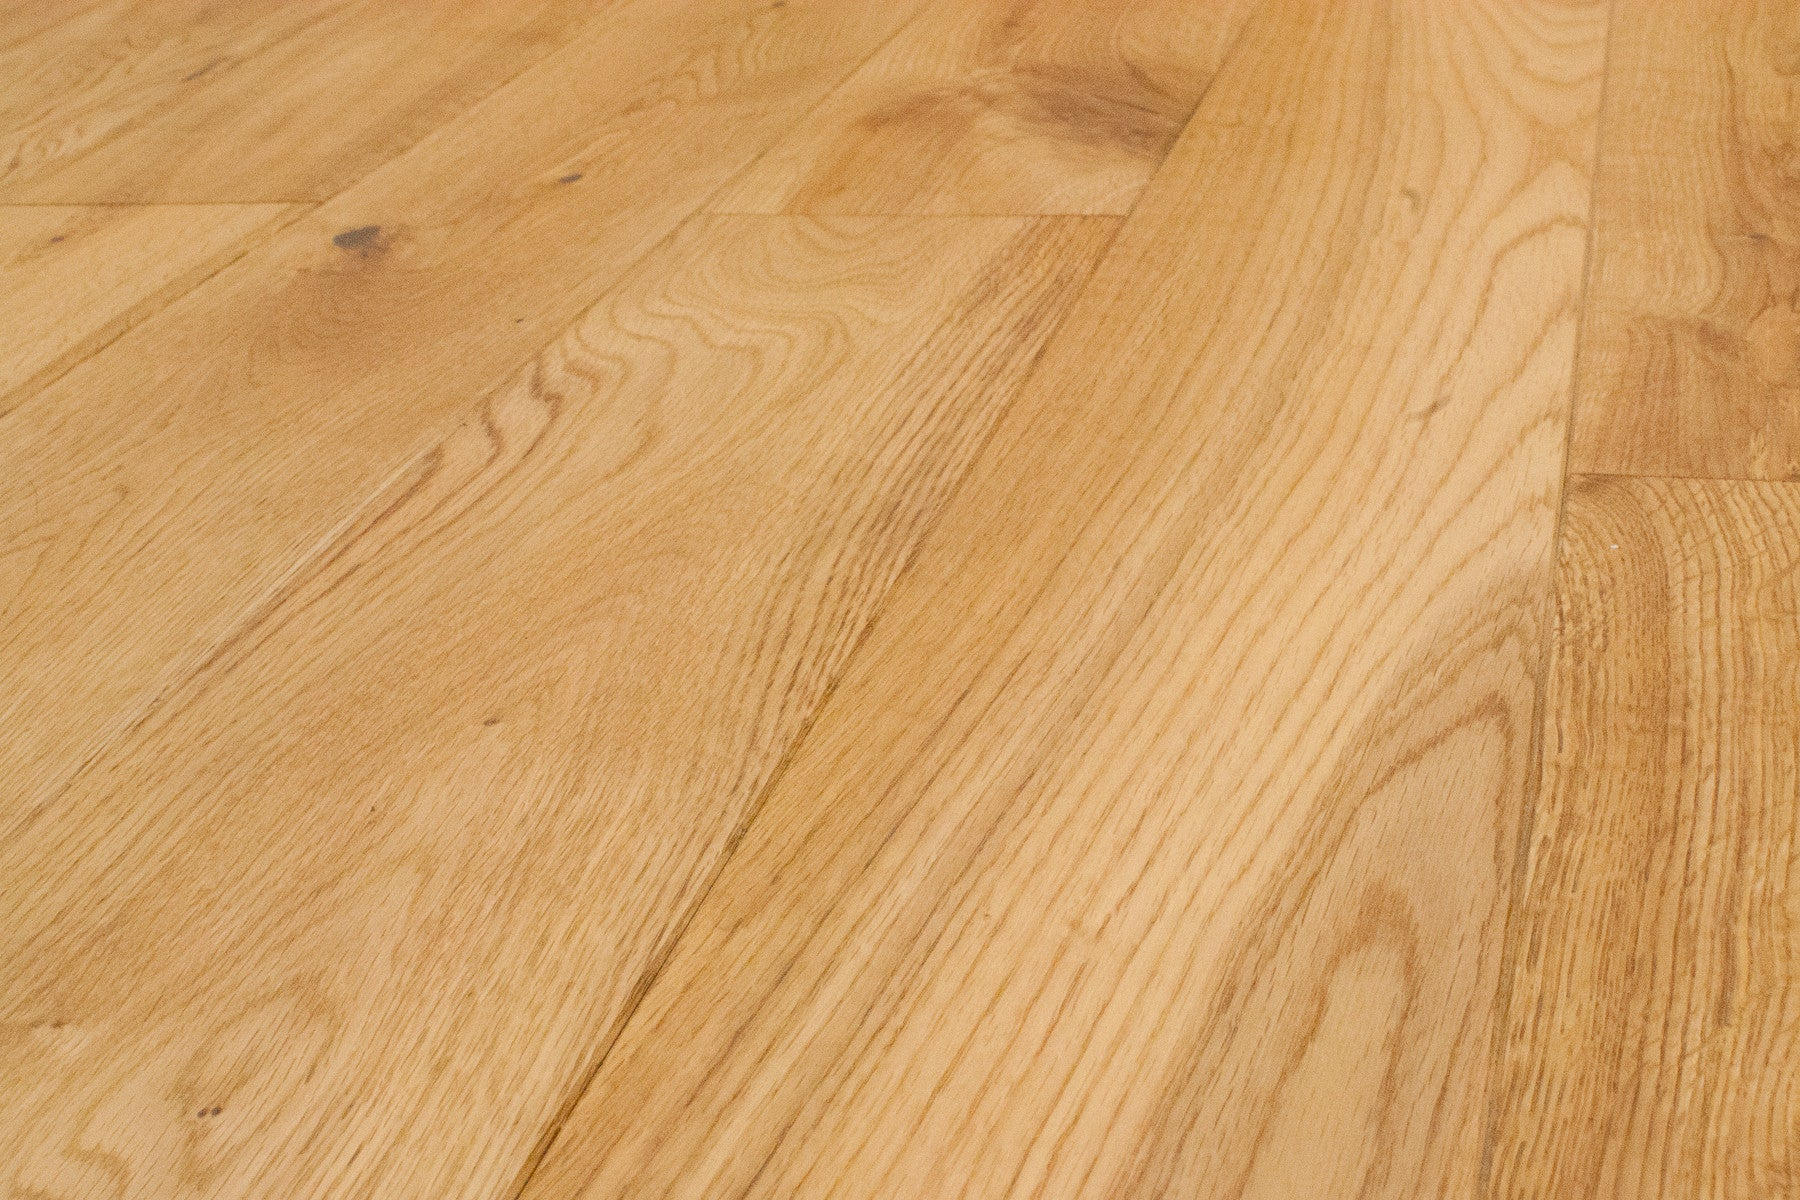 Natural Oak 5 European White Oak Solid Hardwood Easiklip Floors